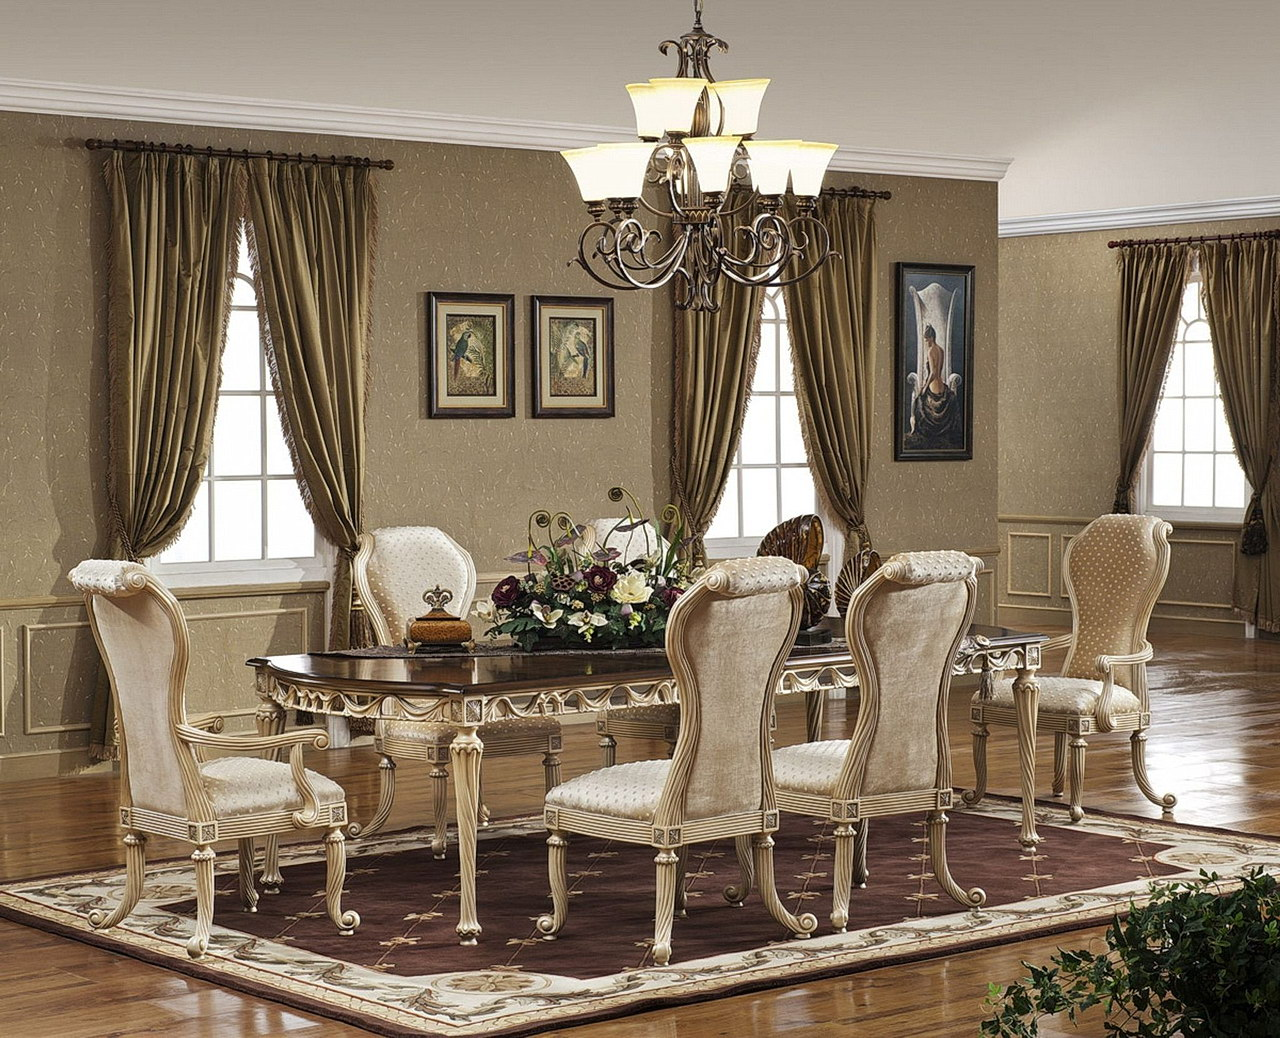 79 handpicked dining room ideas for sweet home. - Interior ... on Dining Room Curtains Ideas  id=74676